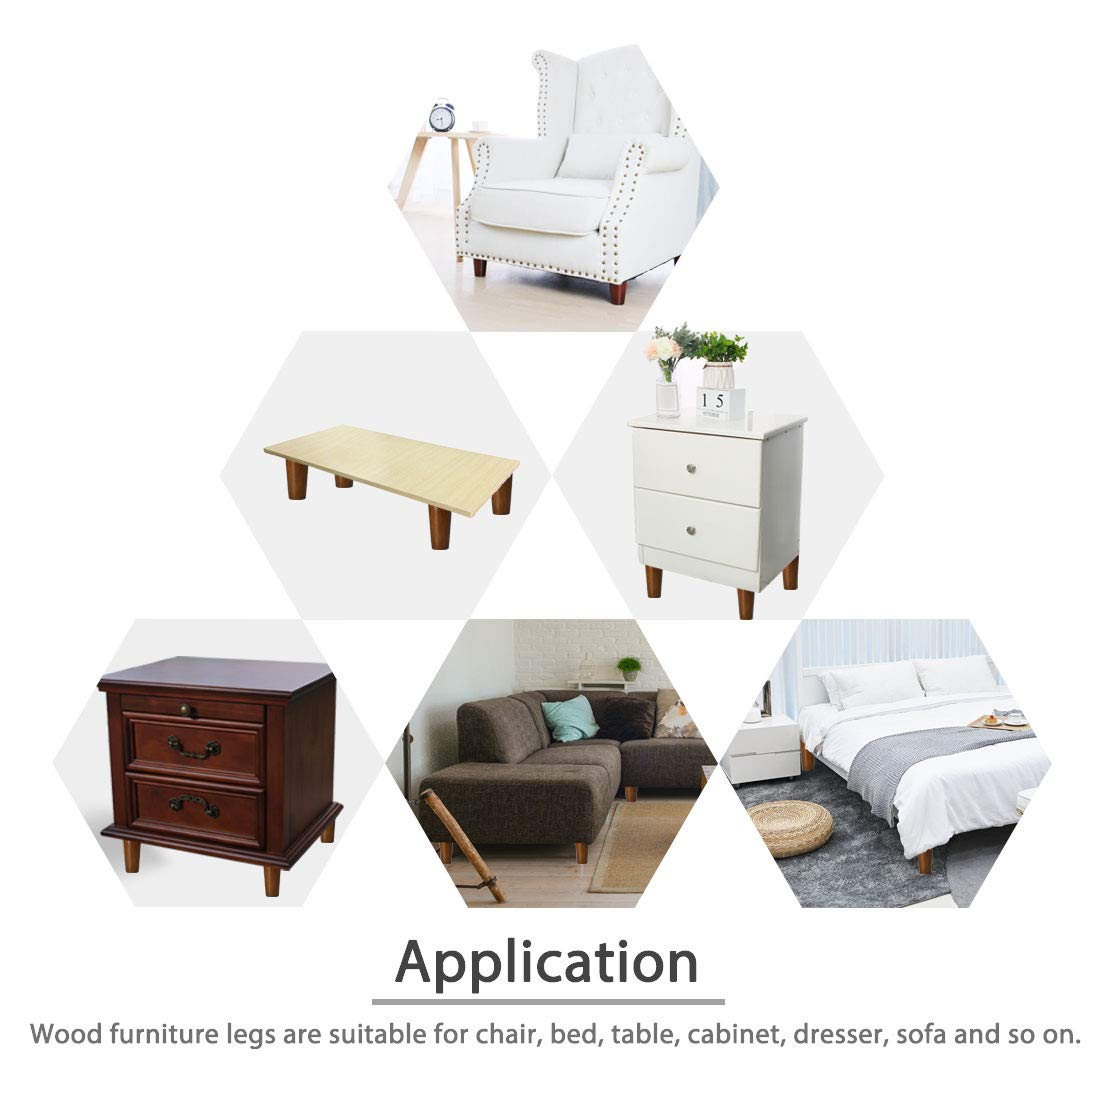 uxcell 3 Round Solid Wood Furniture Legs Sofa Couch Chair Bed Desk Closet Cabinet Feet Replacement Set of 8